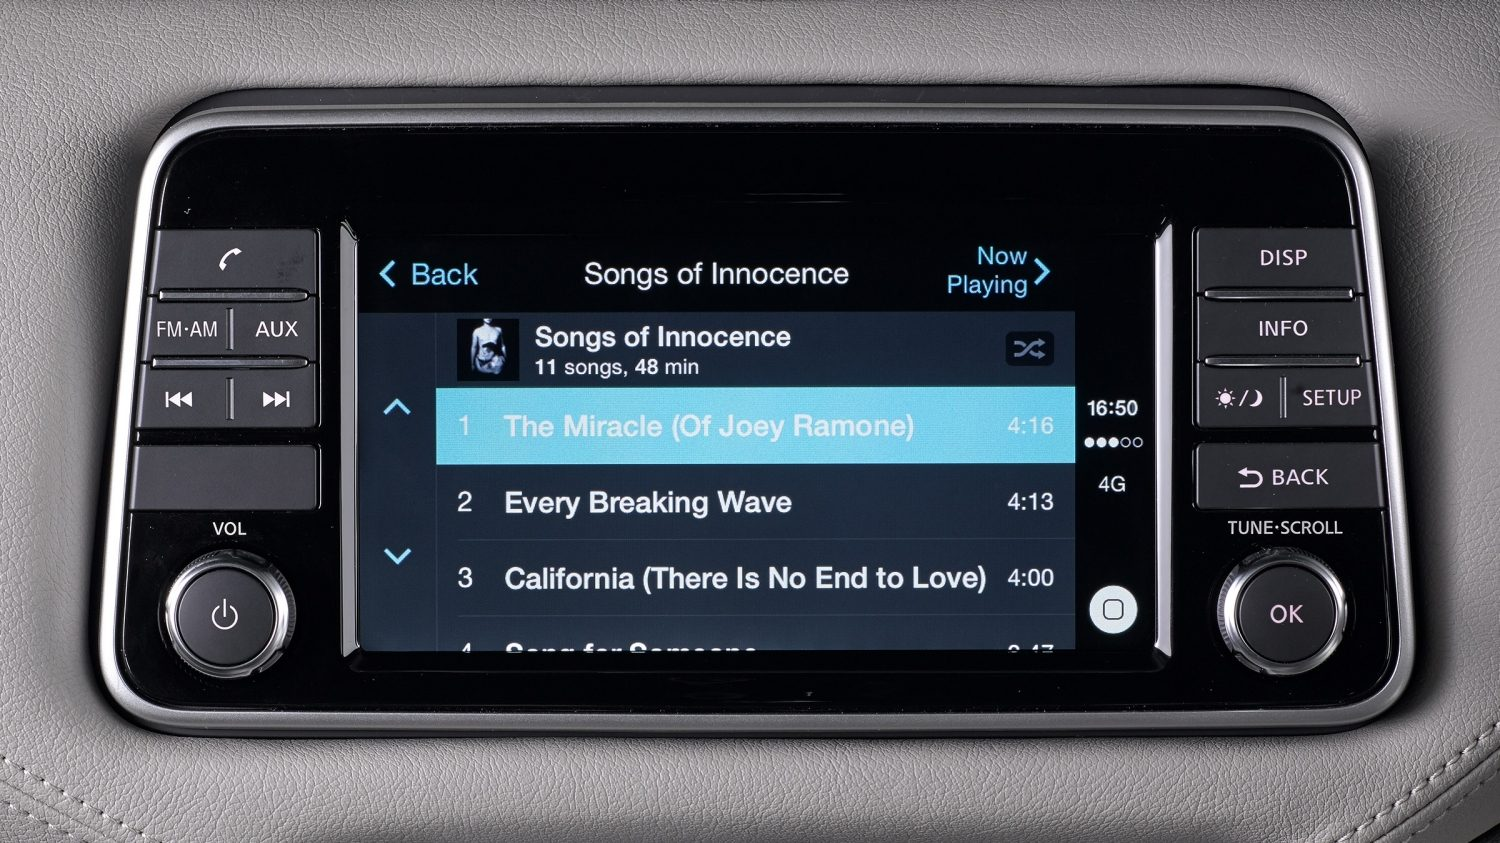 Nissan MICRA: Apple Carplay, biblioteca musical